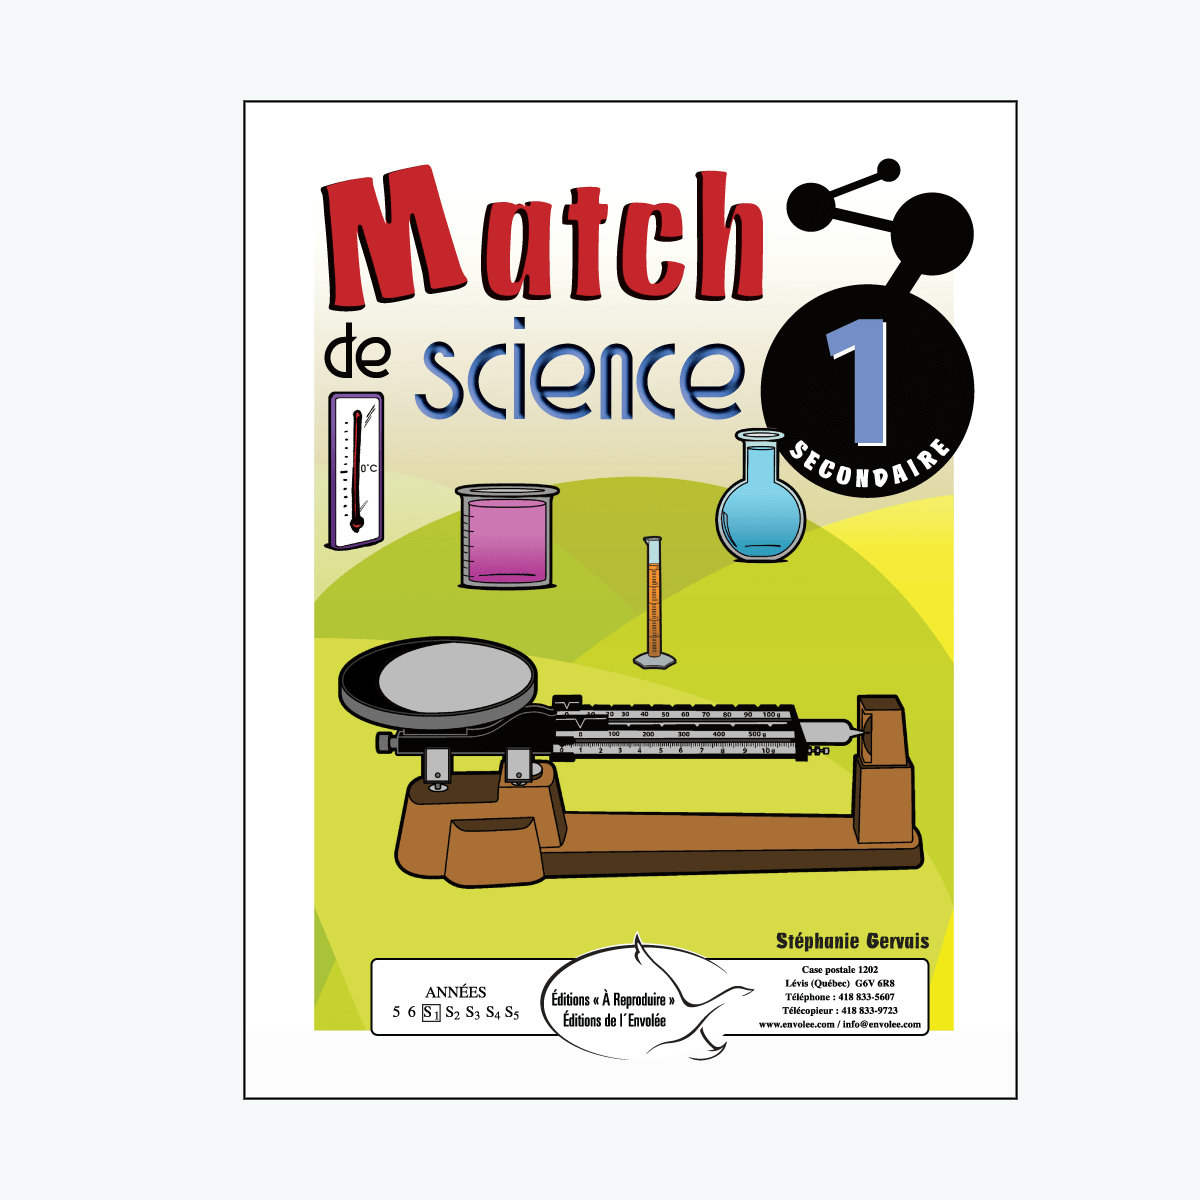 Science matchmaking